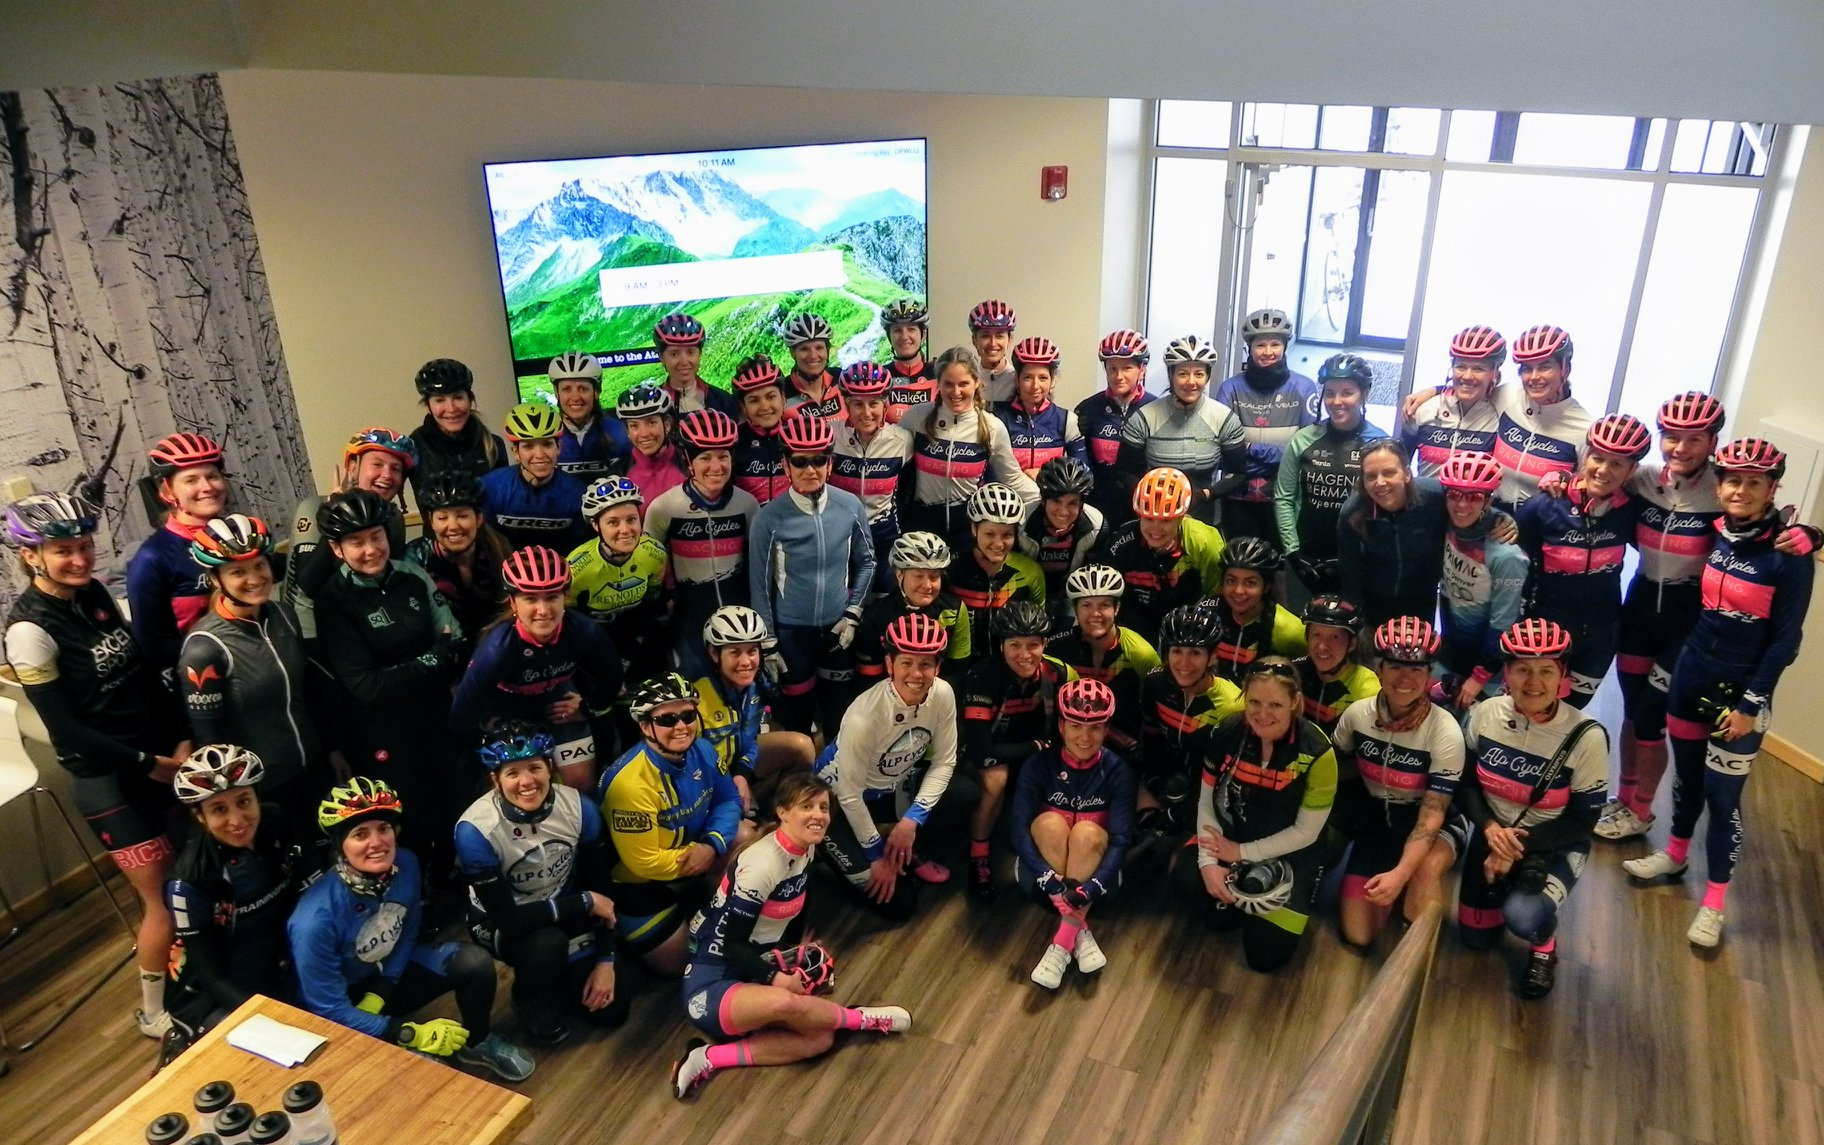 Last year's criterium clinic had almost 50 women